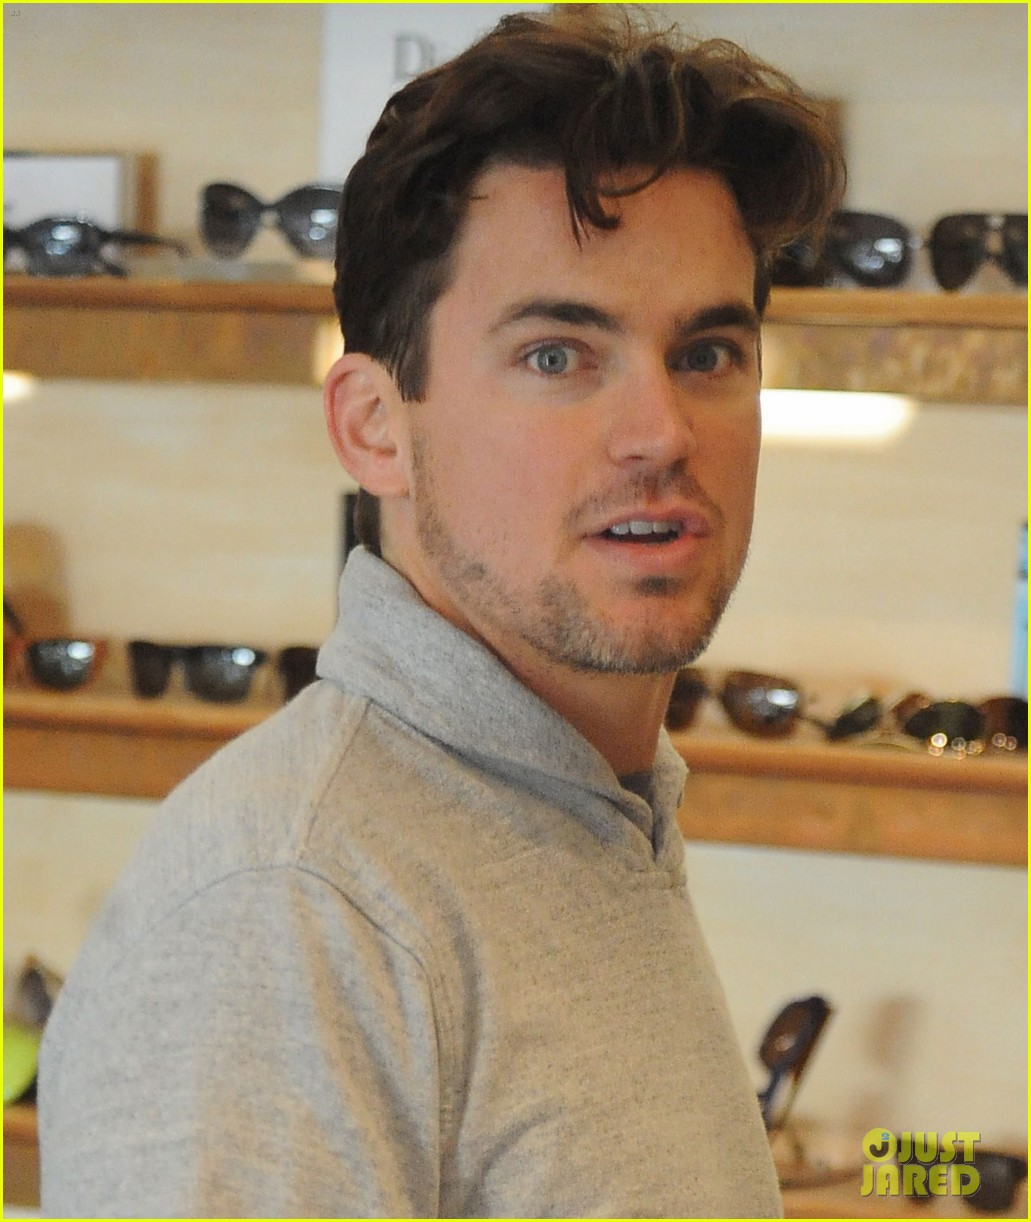 [Image: Matt Bomer Sunglasses Shopping 04]